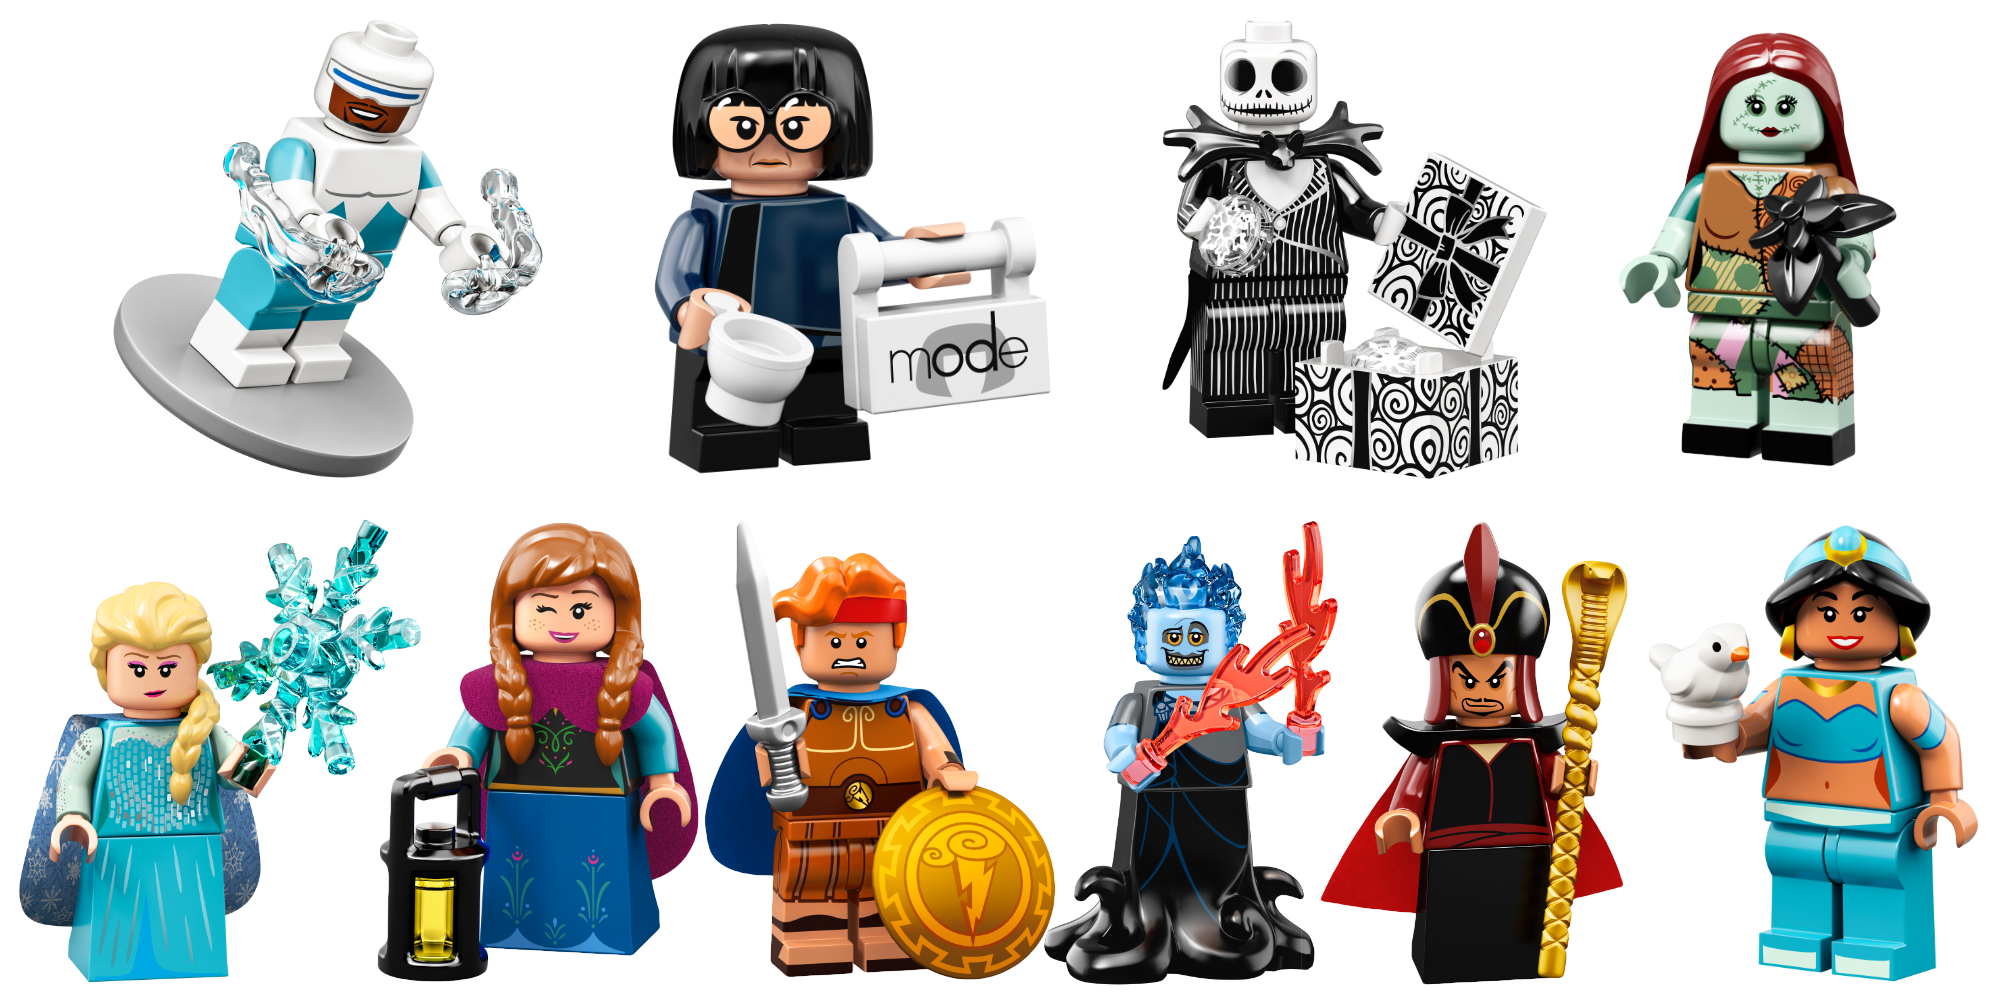 LEGO Collectible Disney Minifigures debuts 18 new characters